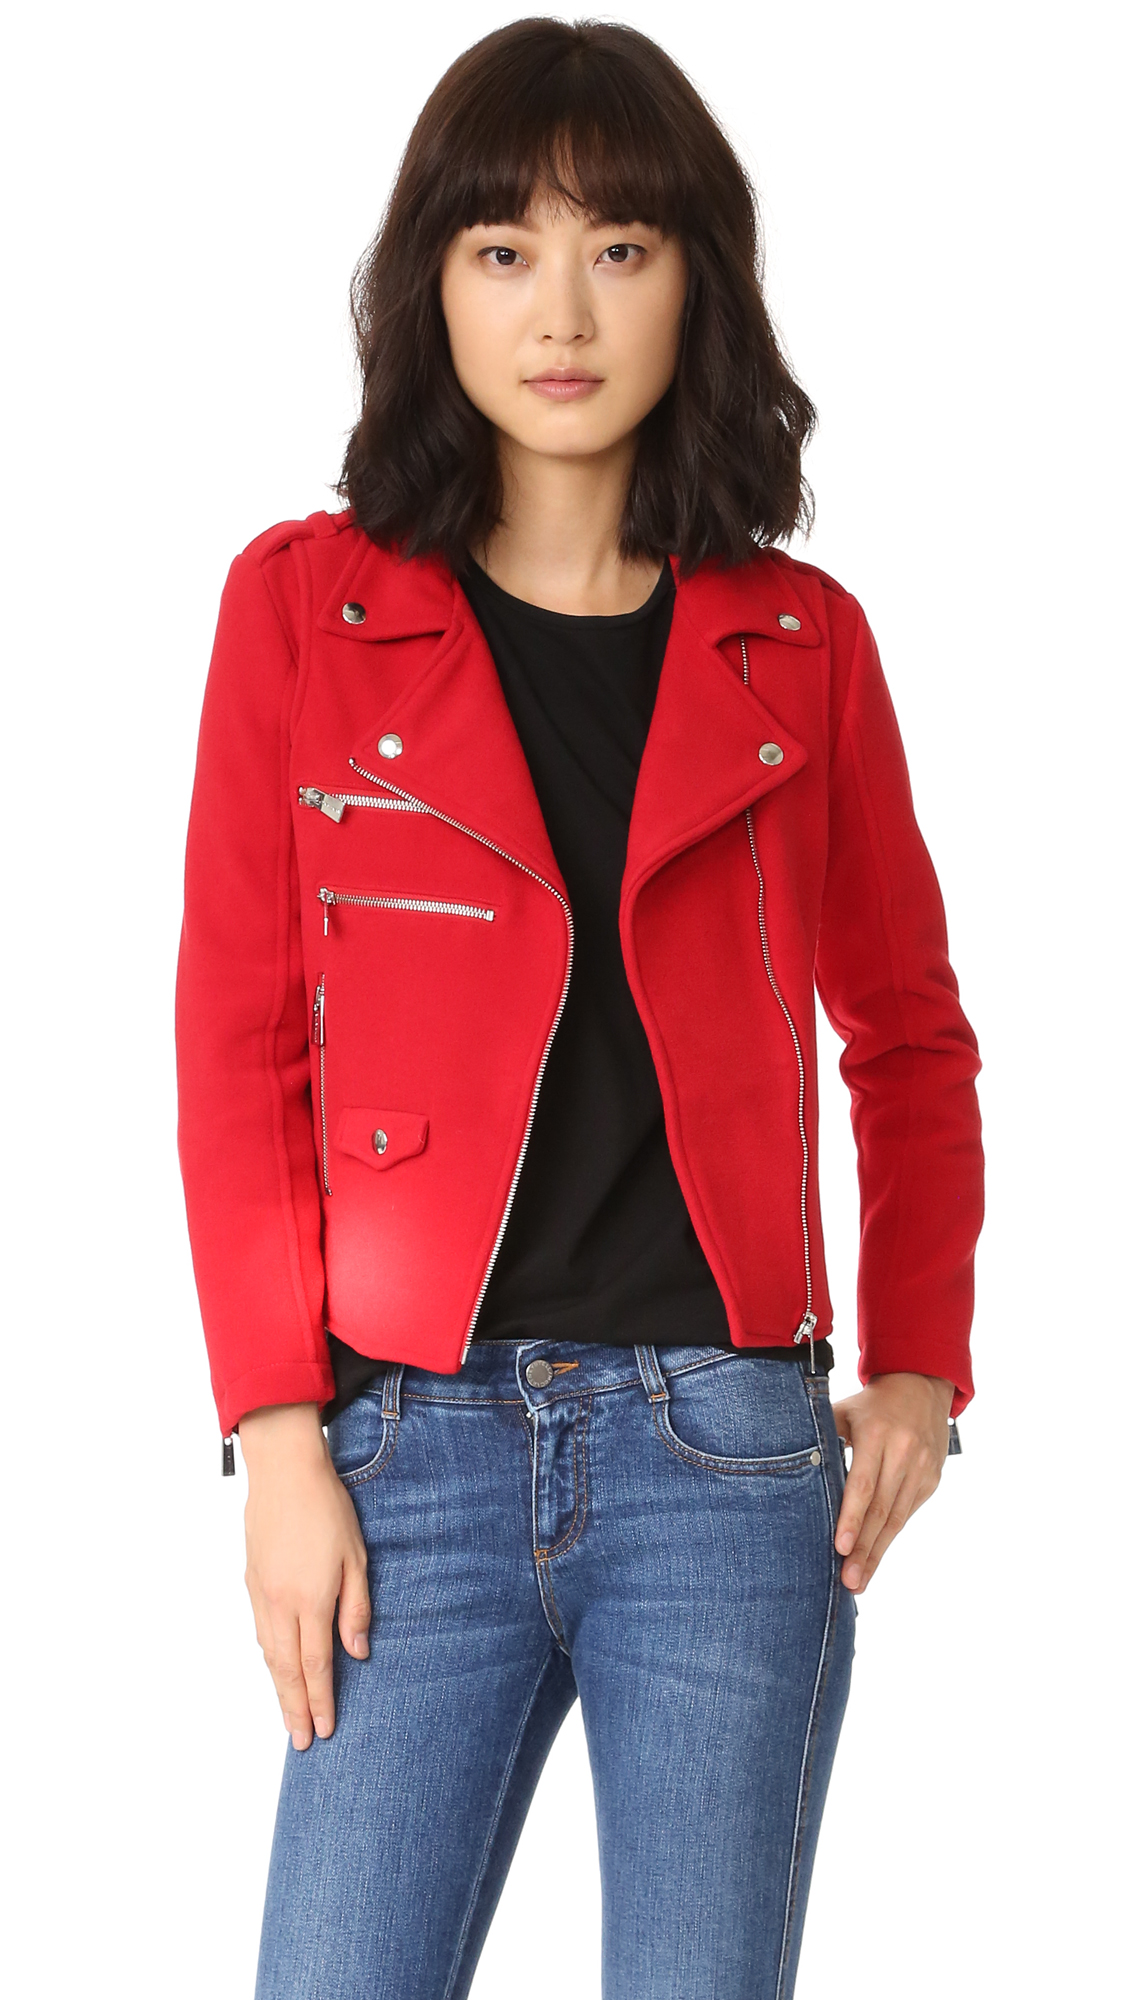 Anine Bing Biker Jacket - Red at Shopbop